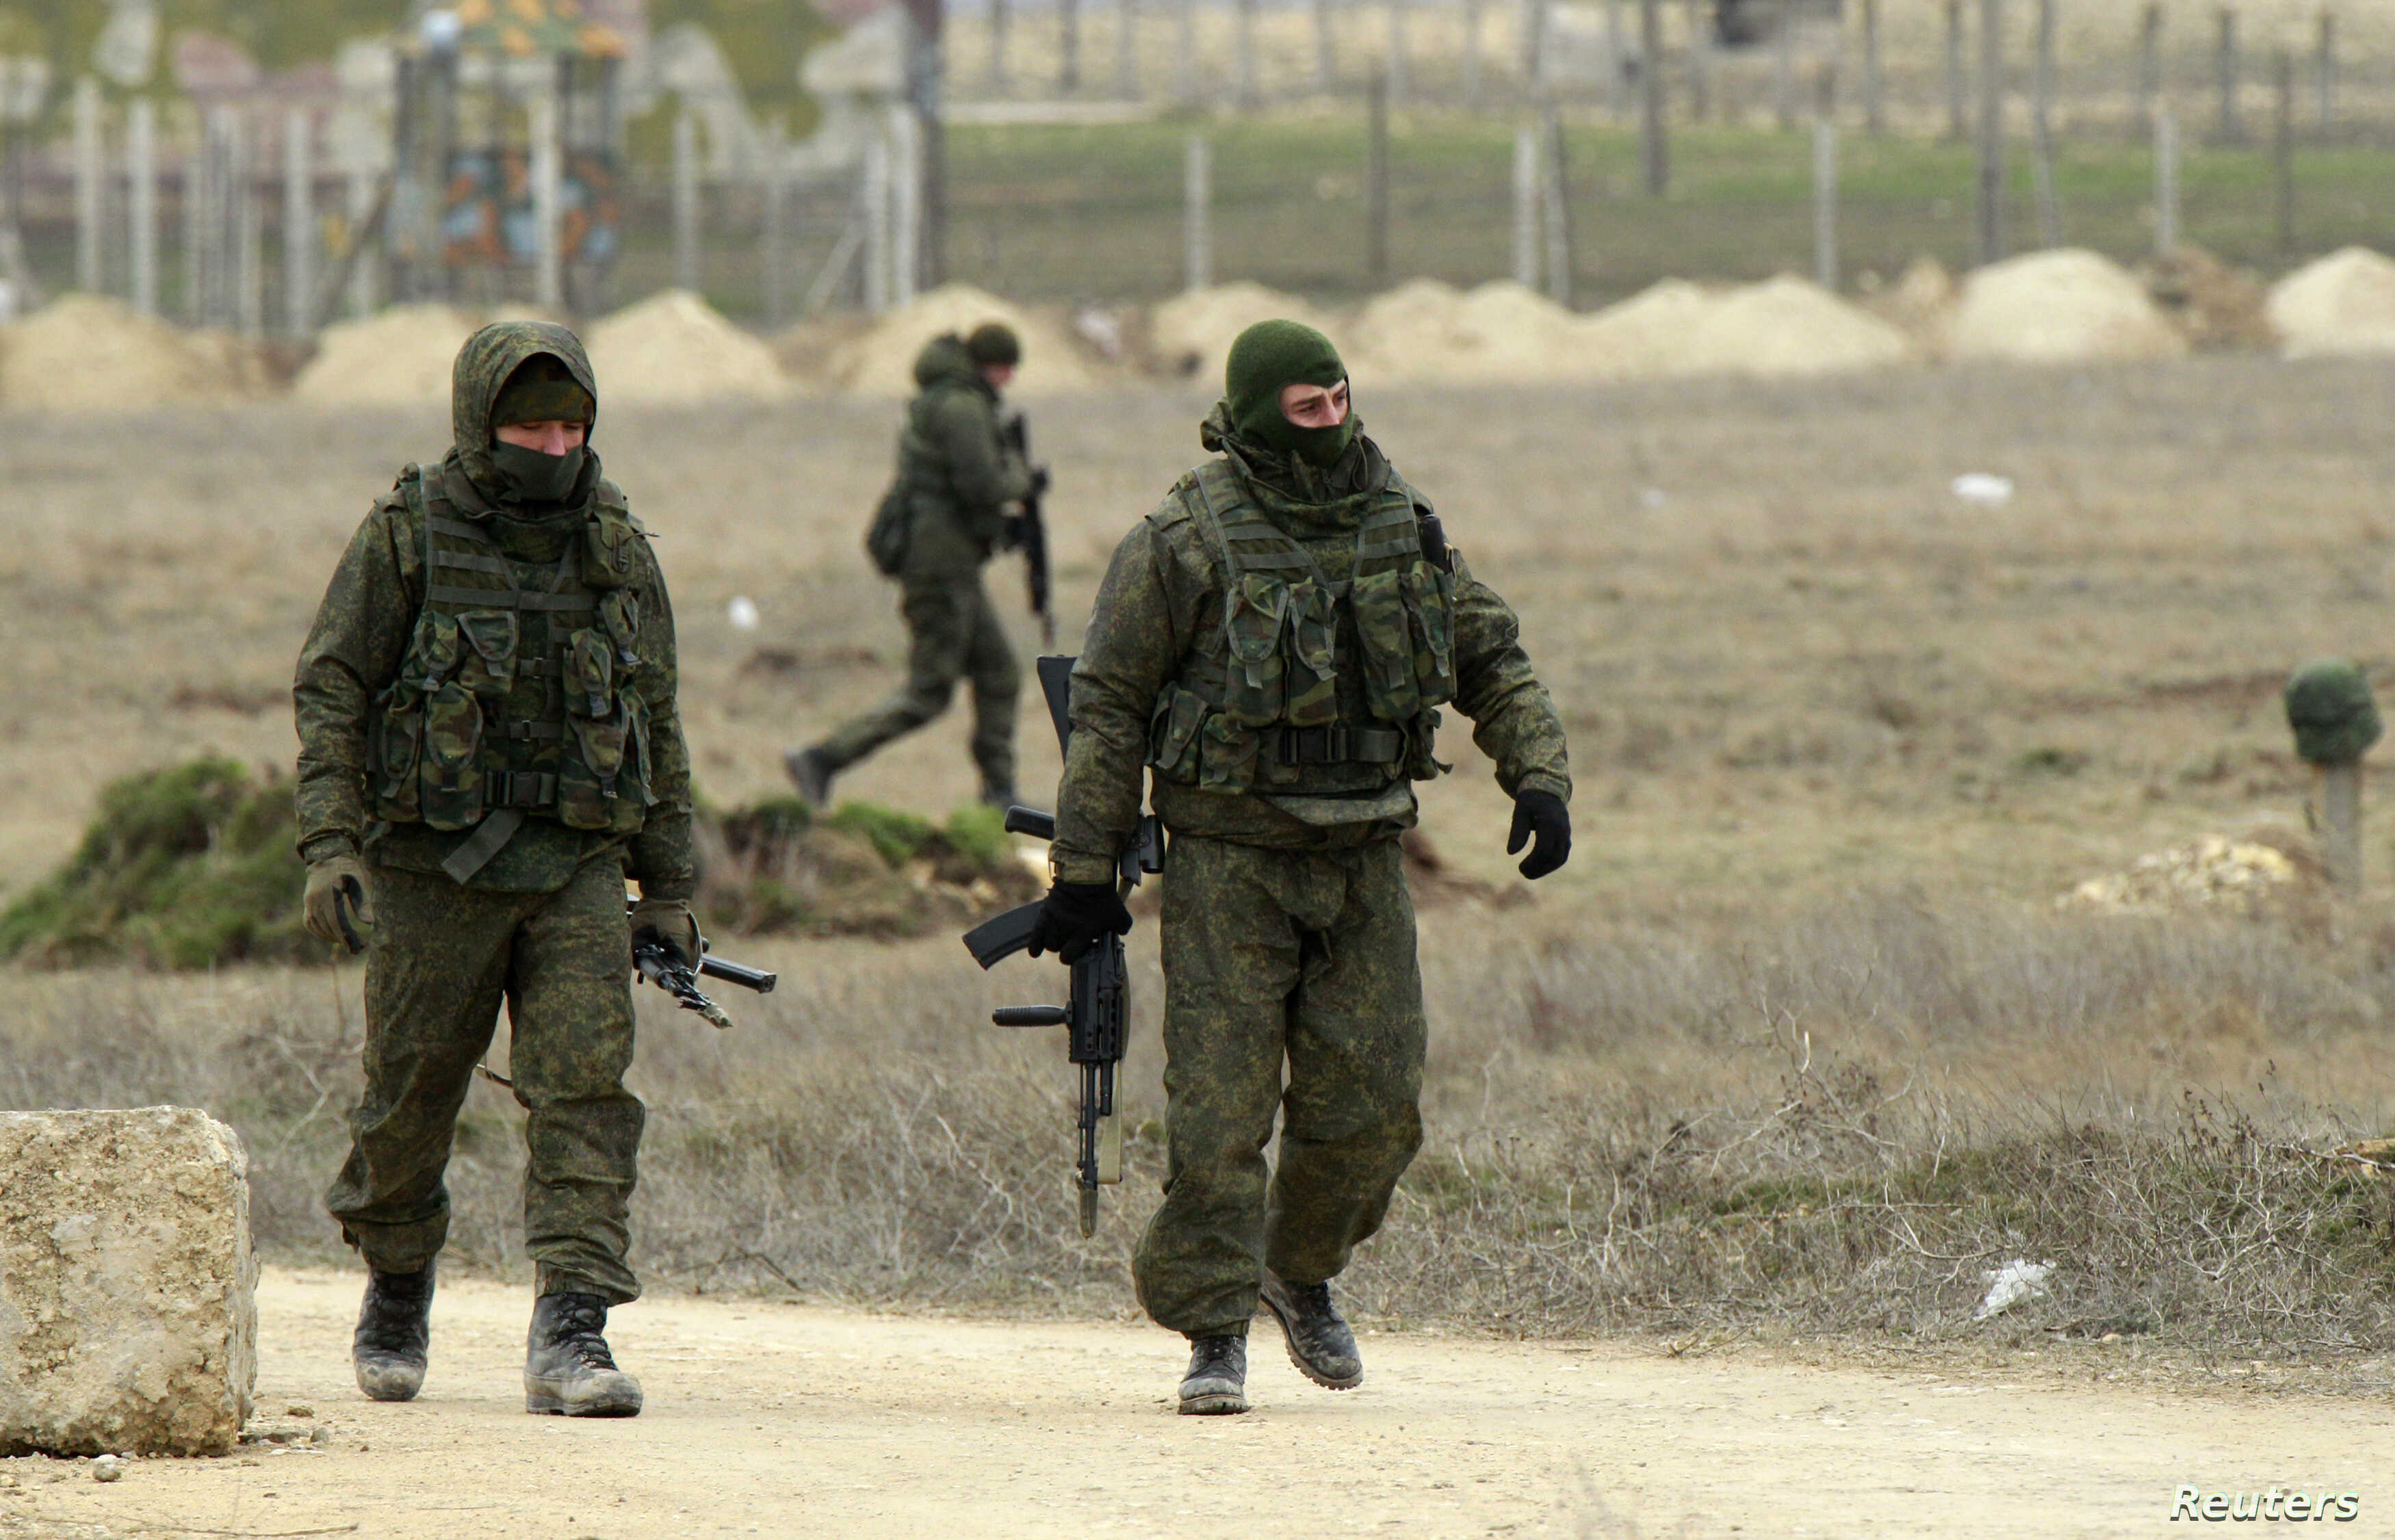 FILE - Armed men, believed to be Russian soldiers, are seen walking at the Crimean port of Yevpatoriya March 8, 2014.